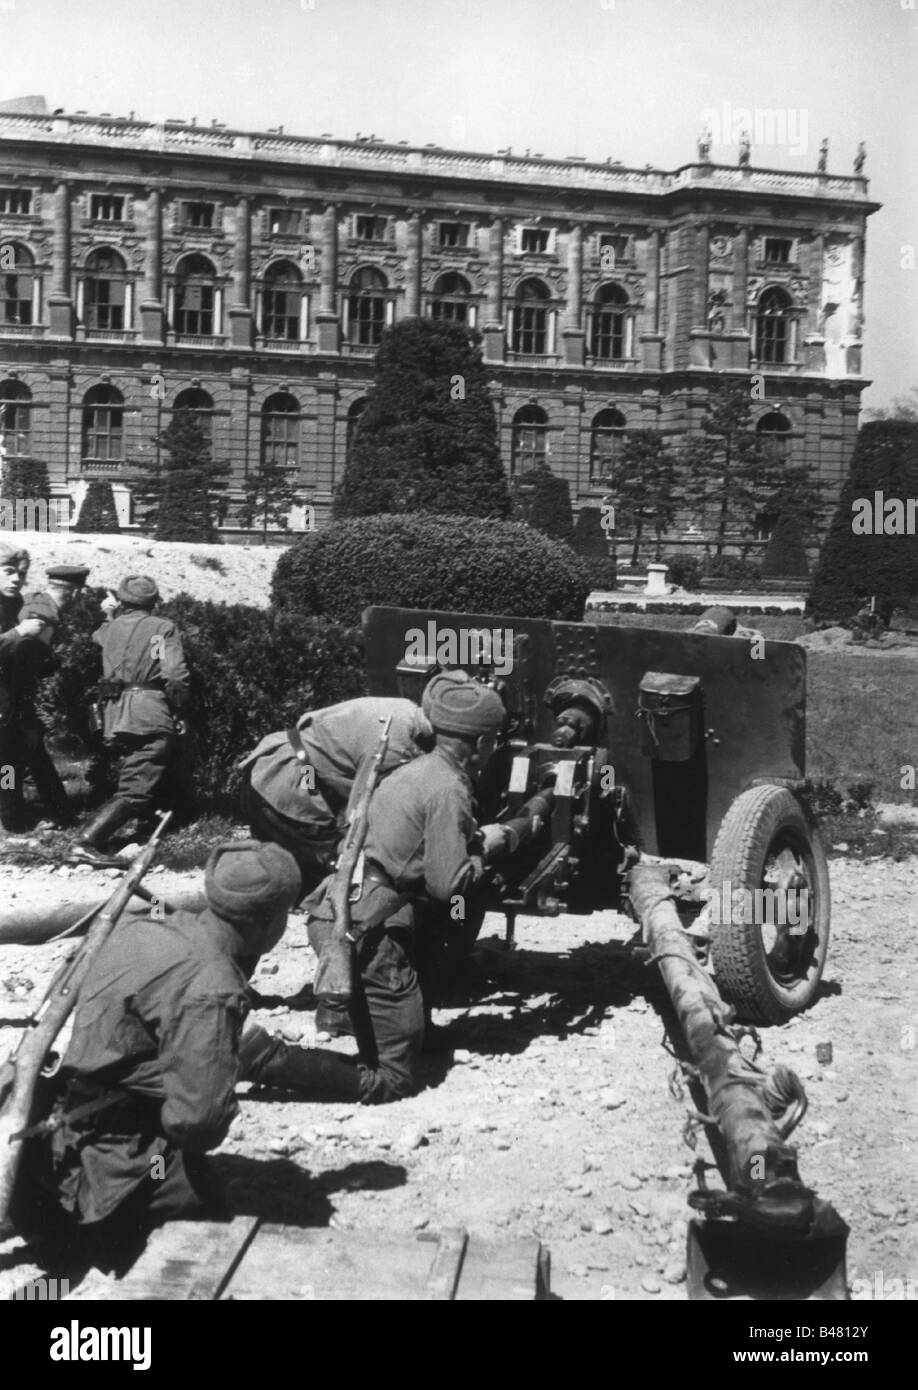 events, Second World War / WWII, Austria, end of war, Vienna 1945, Soviet soldiers with anti-tank gun at the Maria Stock Photo